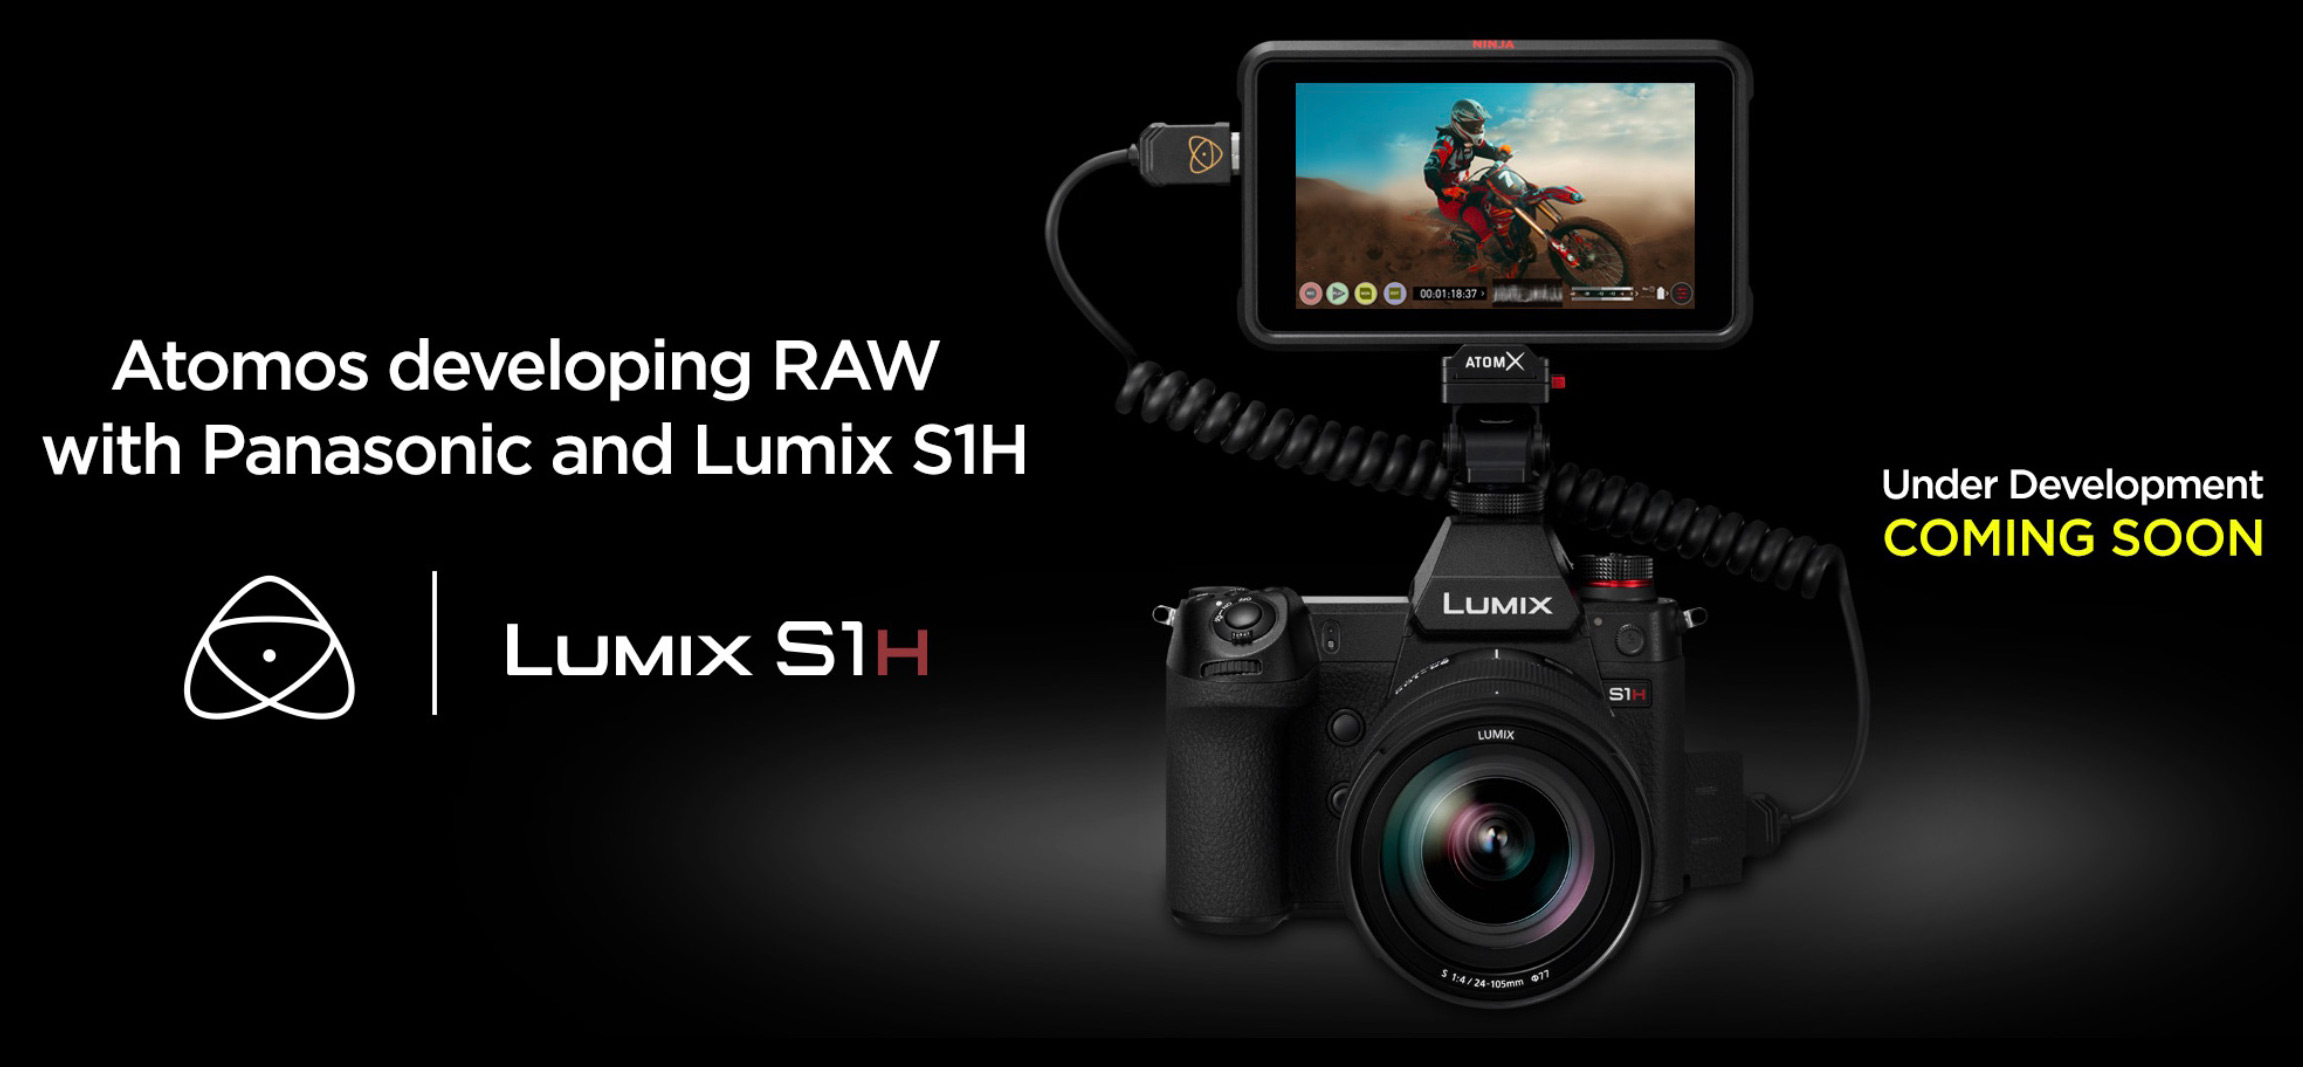 Atomos and Panasonic to co-develop Raw video for the